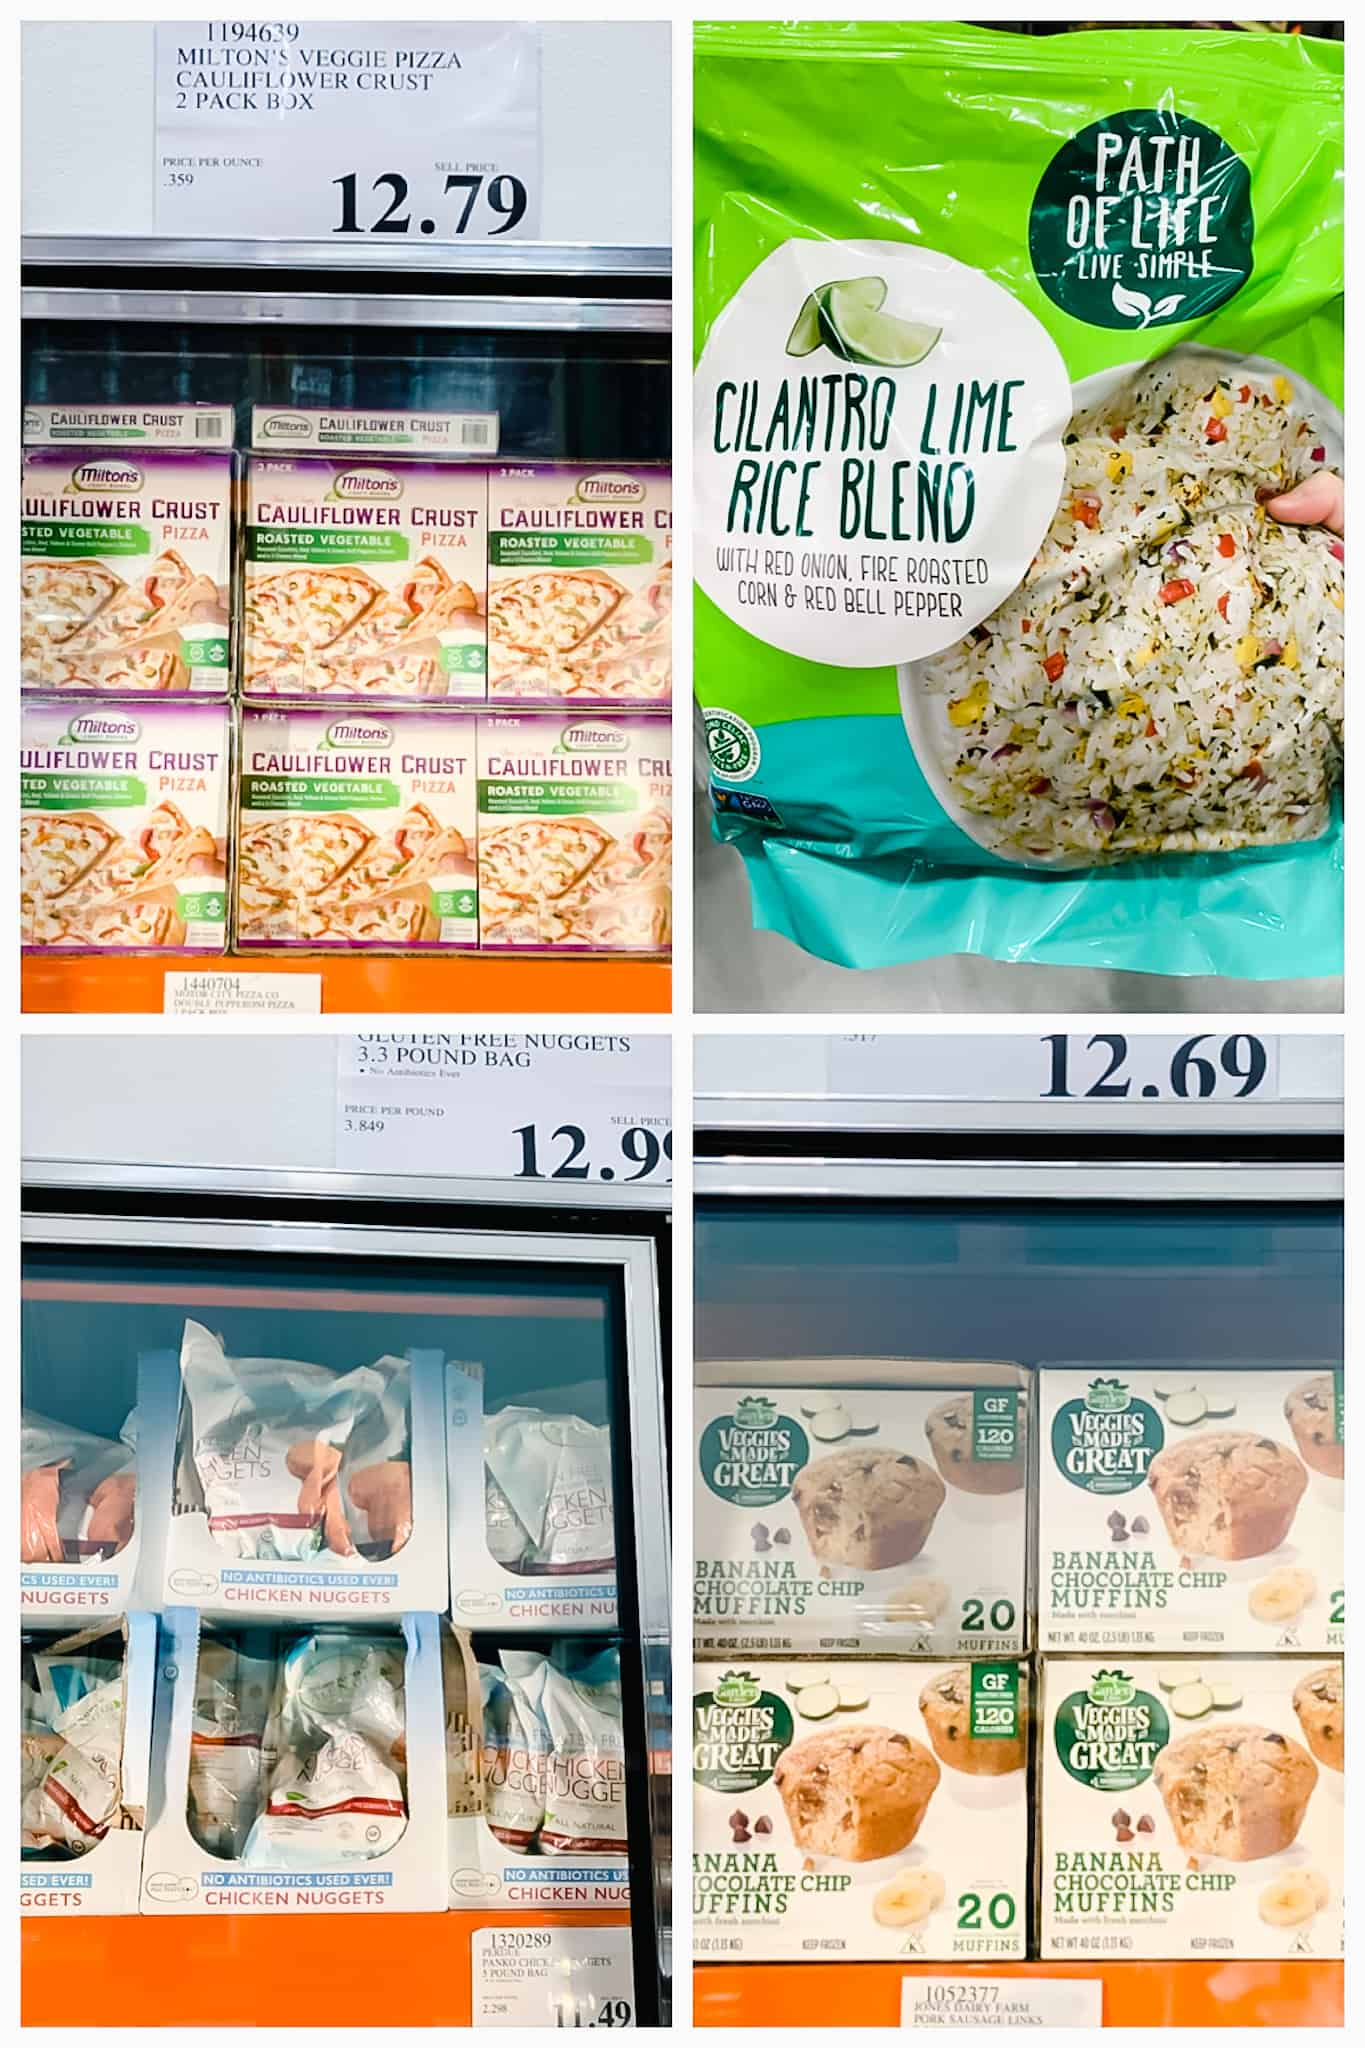 Miltons gluten free pizza, path of life rice blend, gluten free chicken nuggets, and veggies made great muffins in freezer case at Costco.